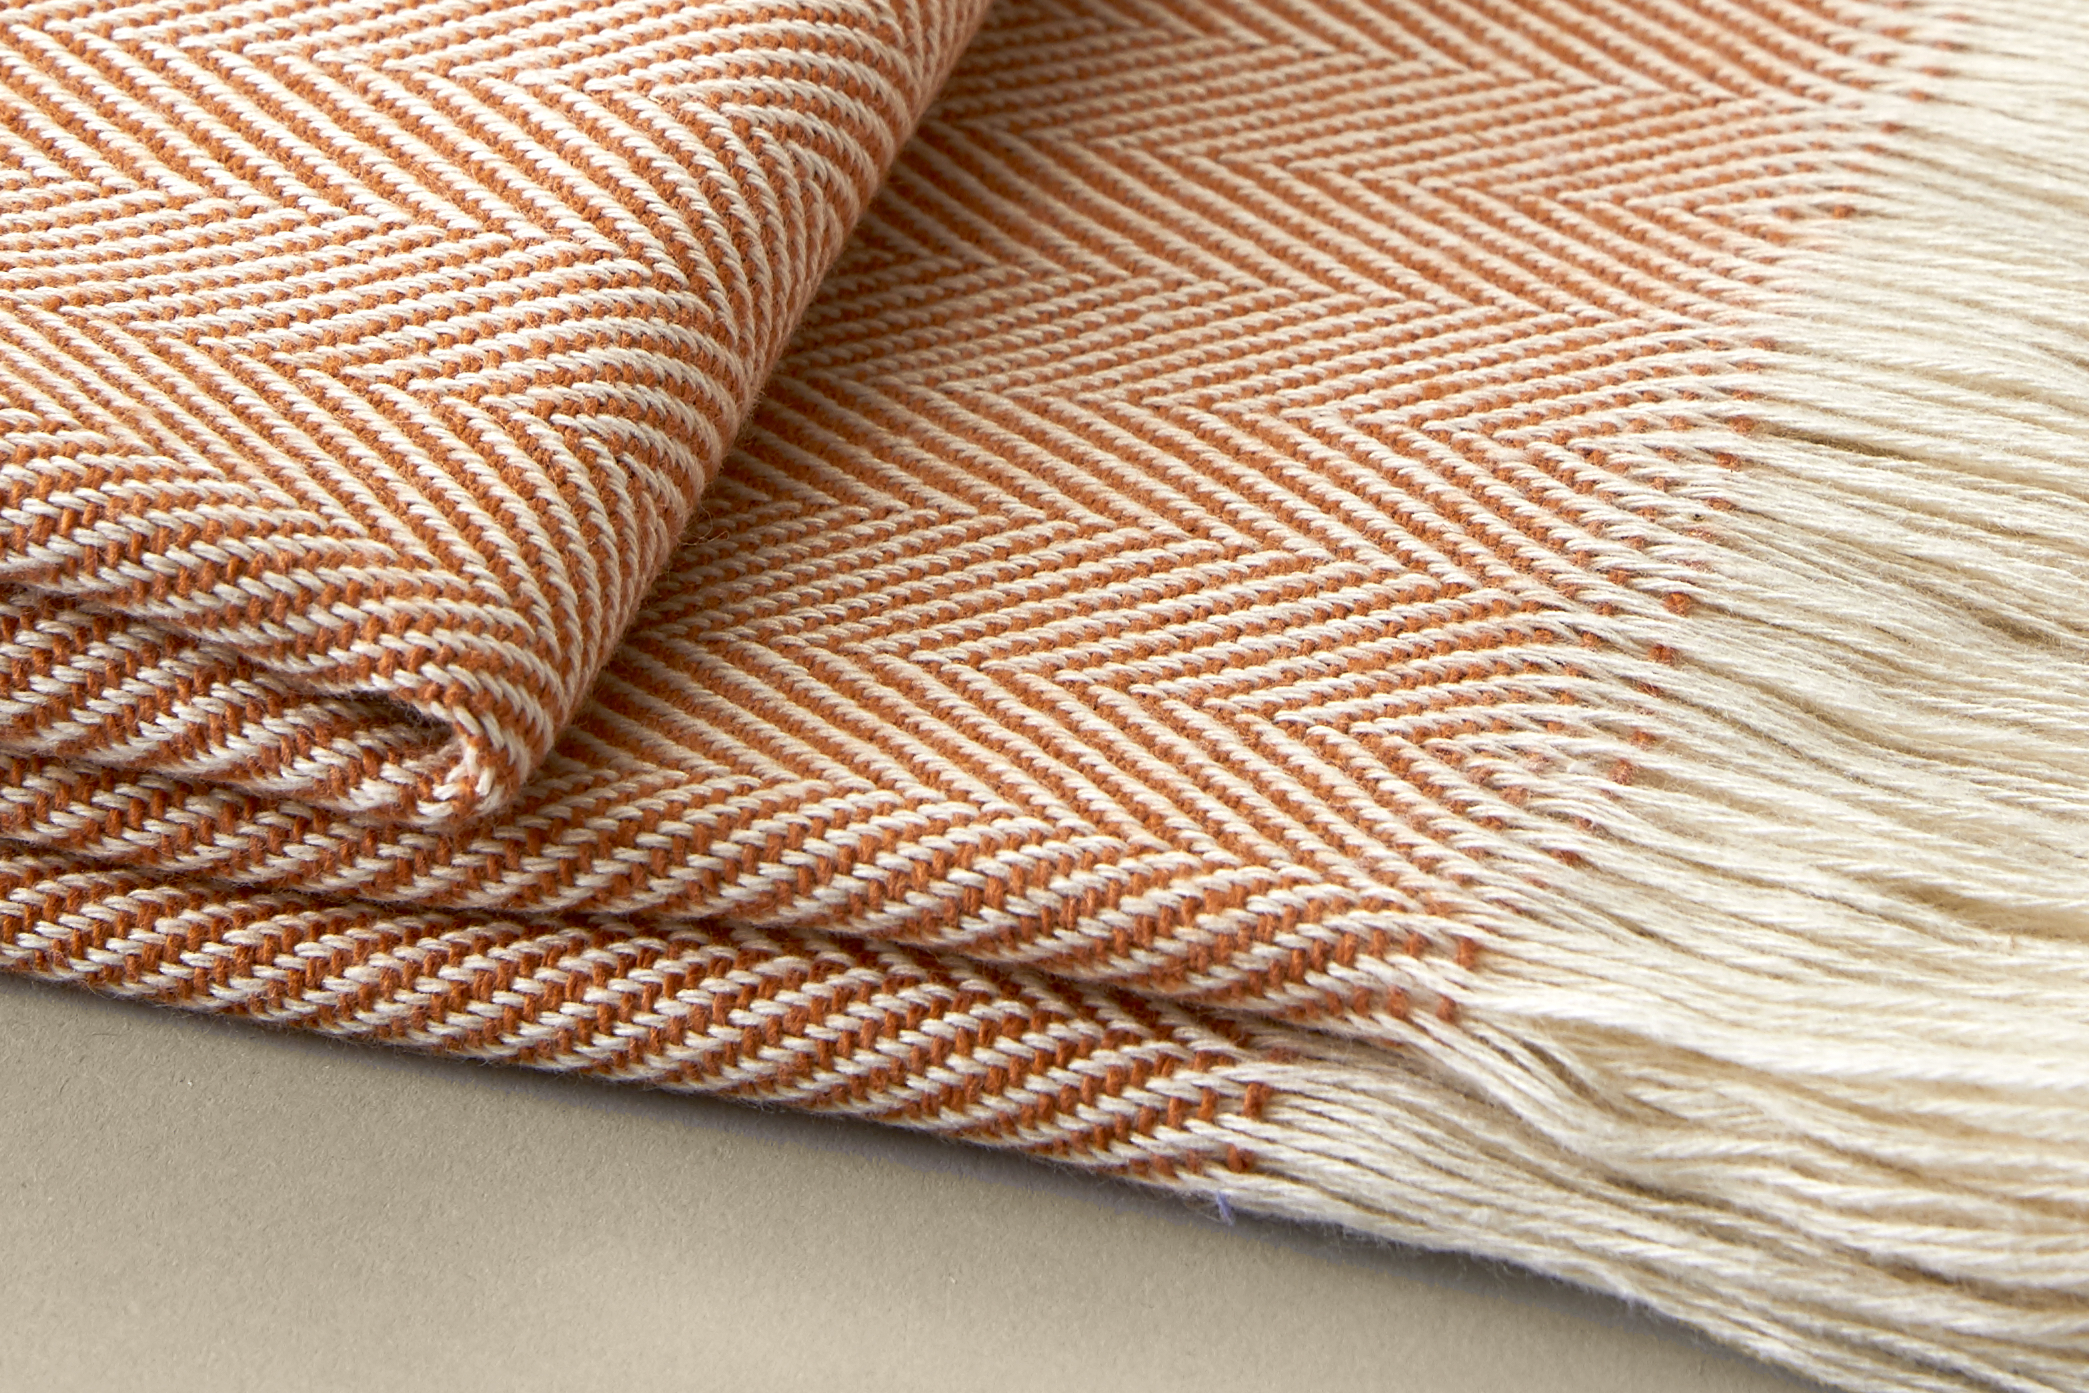 Revival_New_York_Luxury_Decor_Throws_Blankets_Custom_Products_Hospitality_Hotels